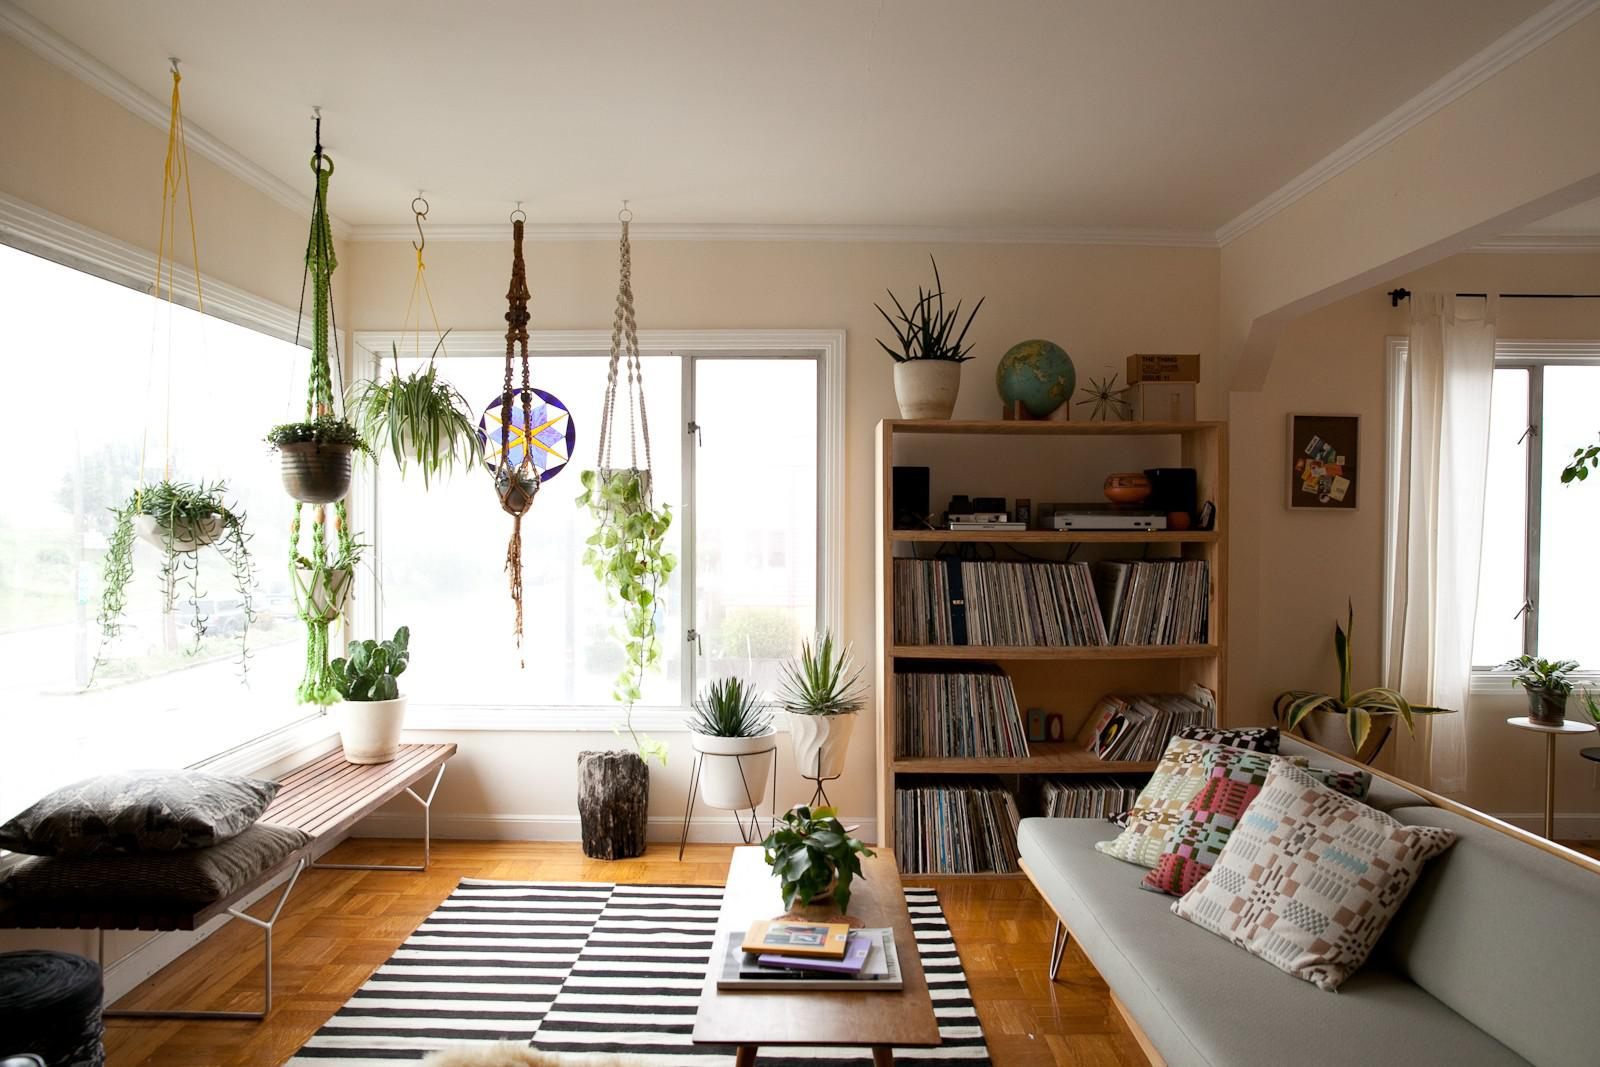 Decorating our homes with plants interior design explained for Living room with indoor plants